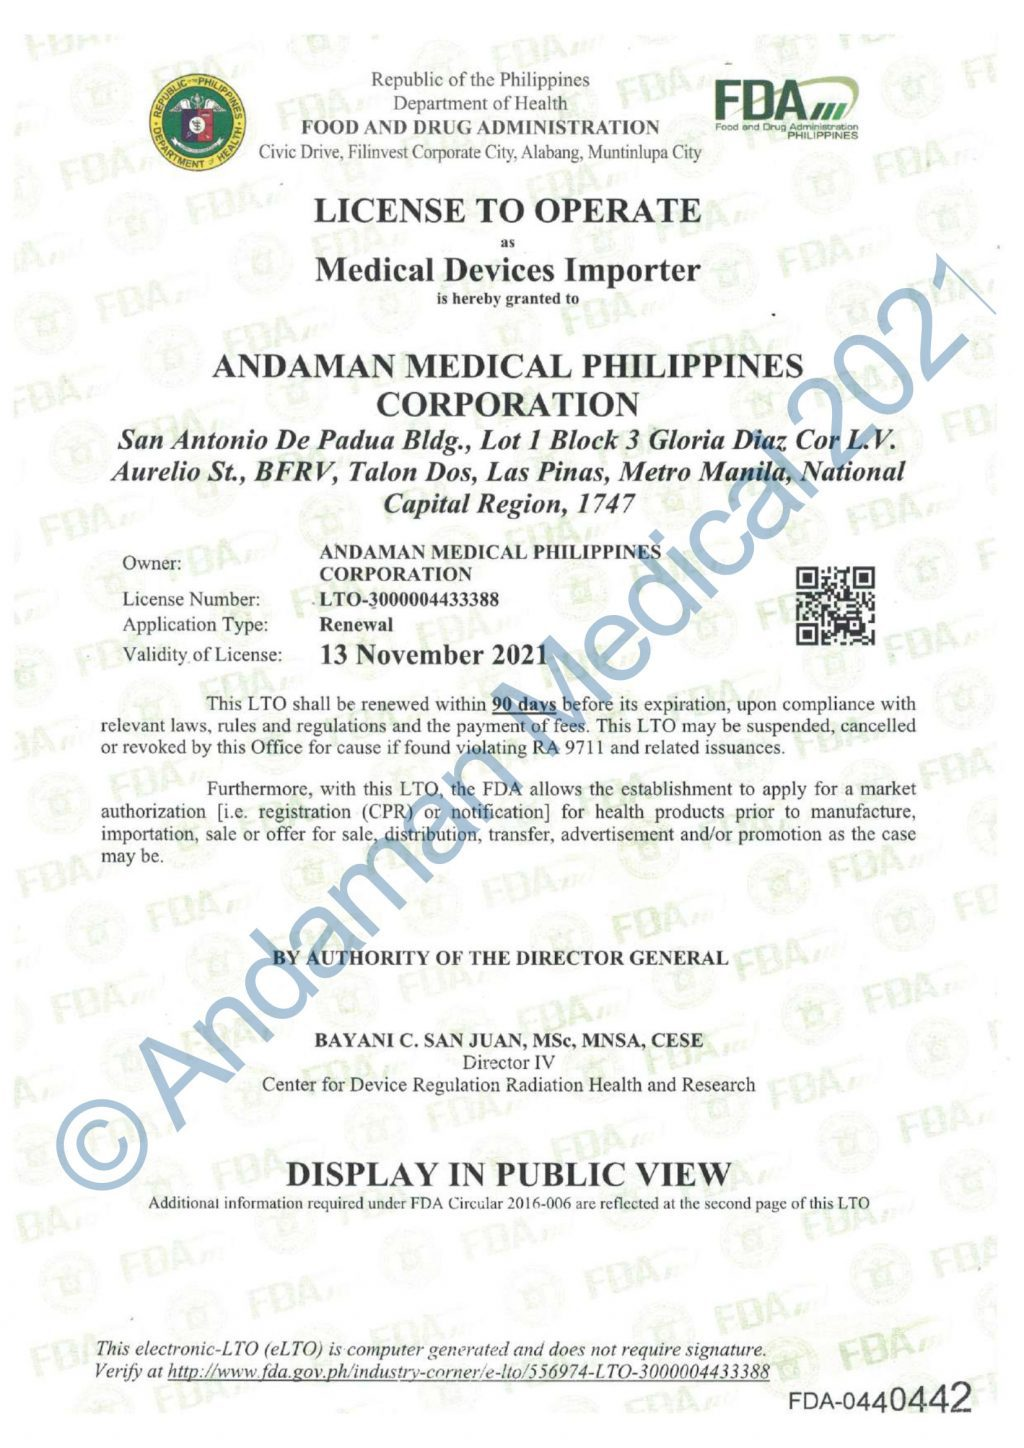 Andaman Medical Philippines FDA License to Operate